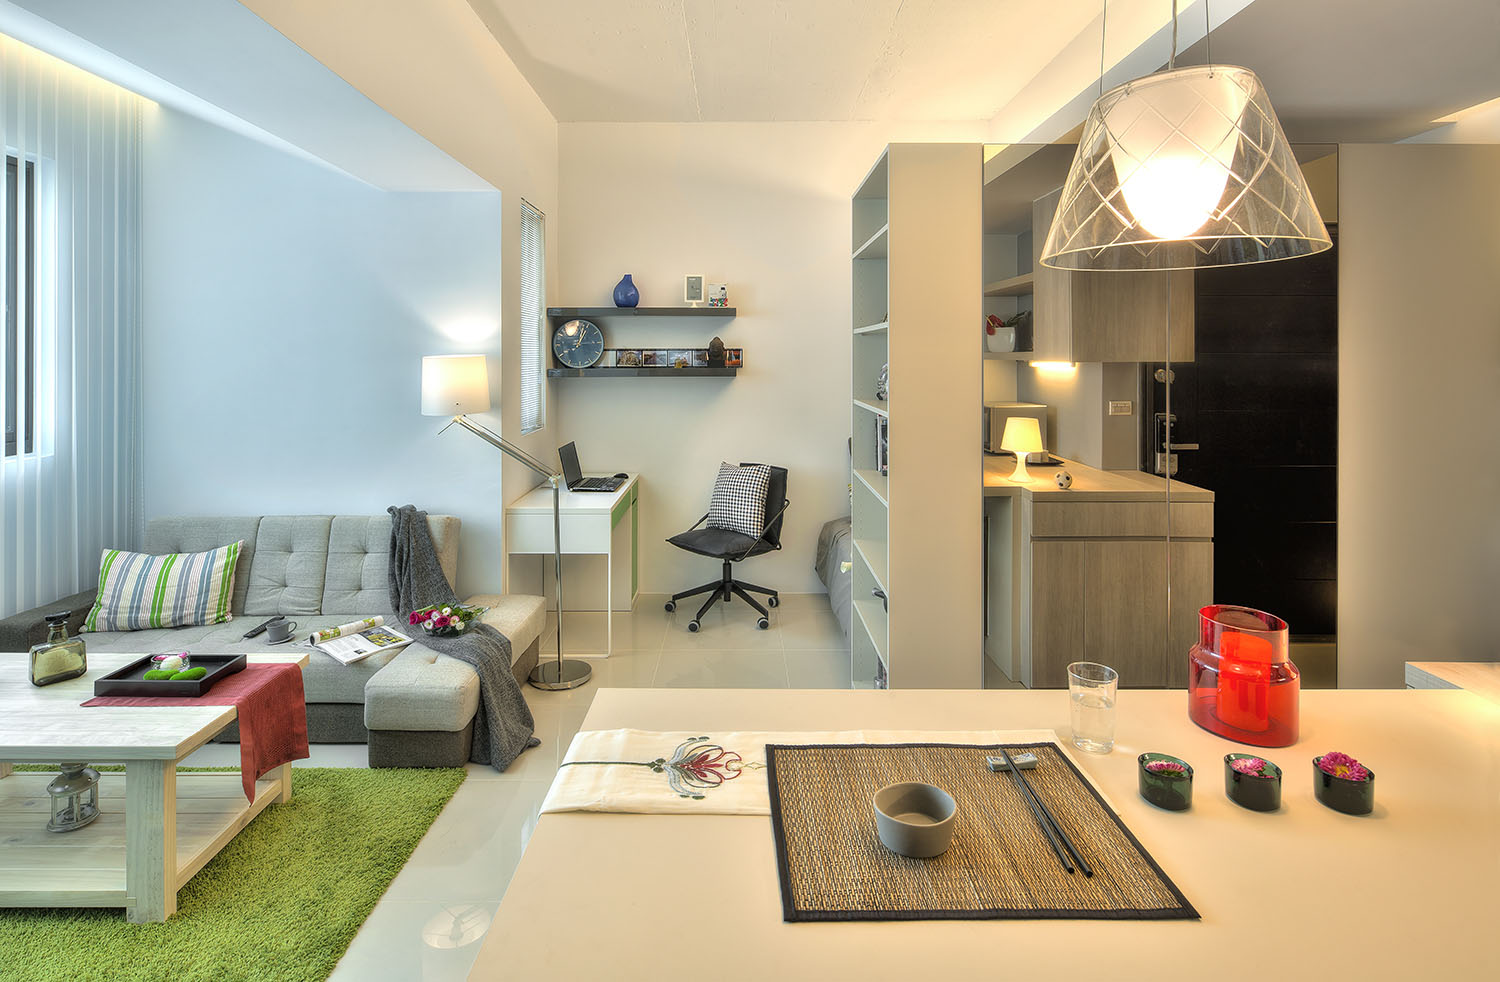 Small Taipei Studio Apartment With Clever Efficient Design - Clever storage in paris flat